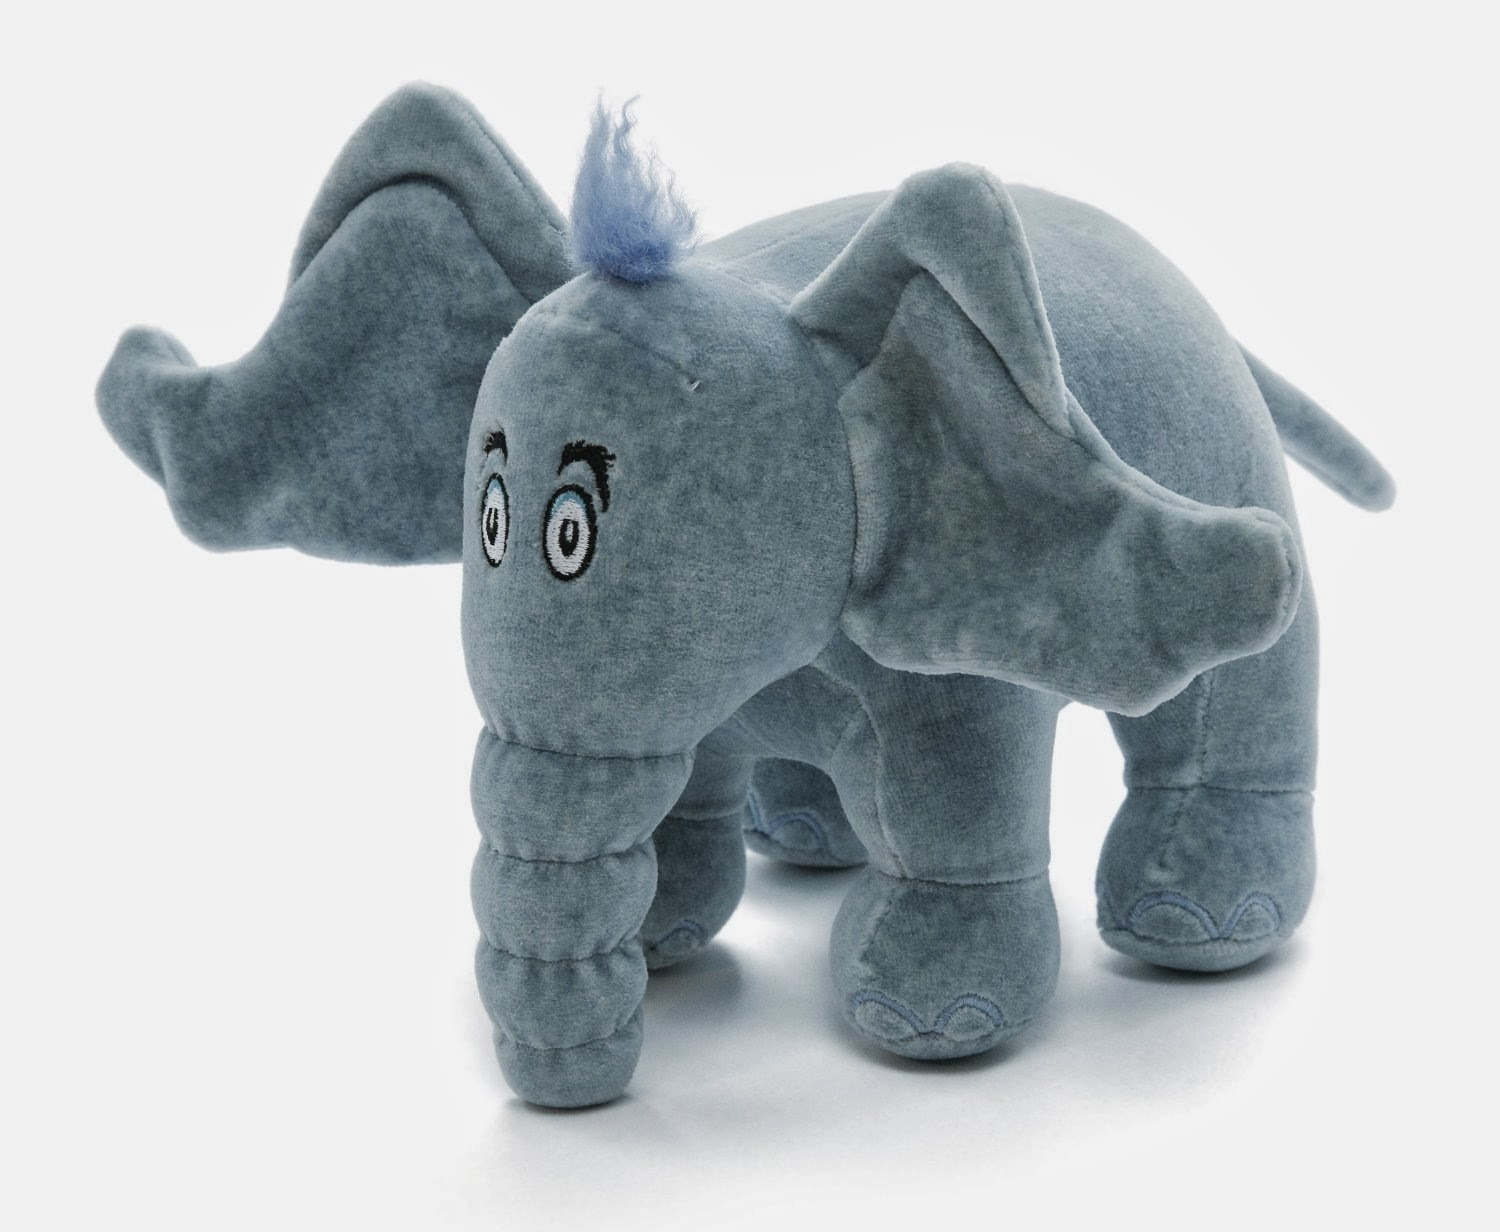 Horton stuffed animal